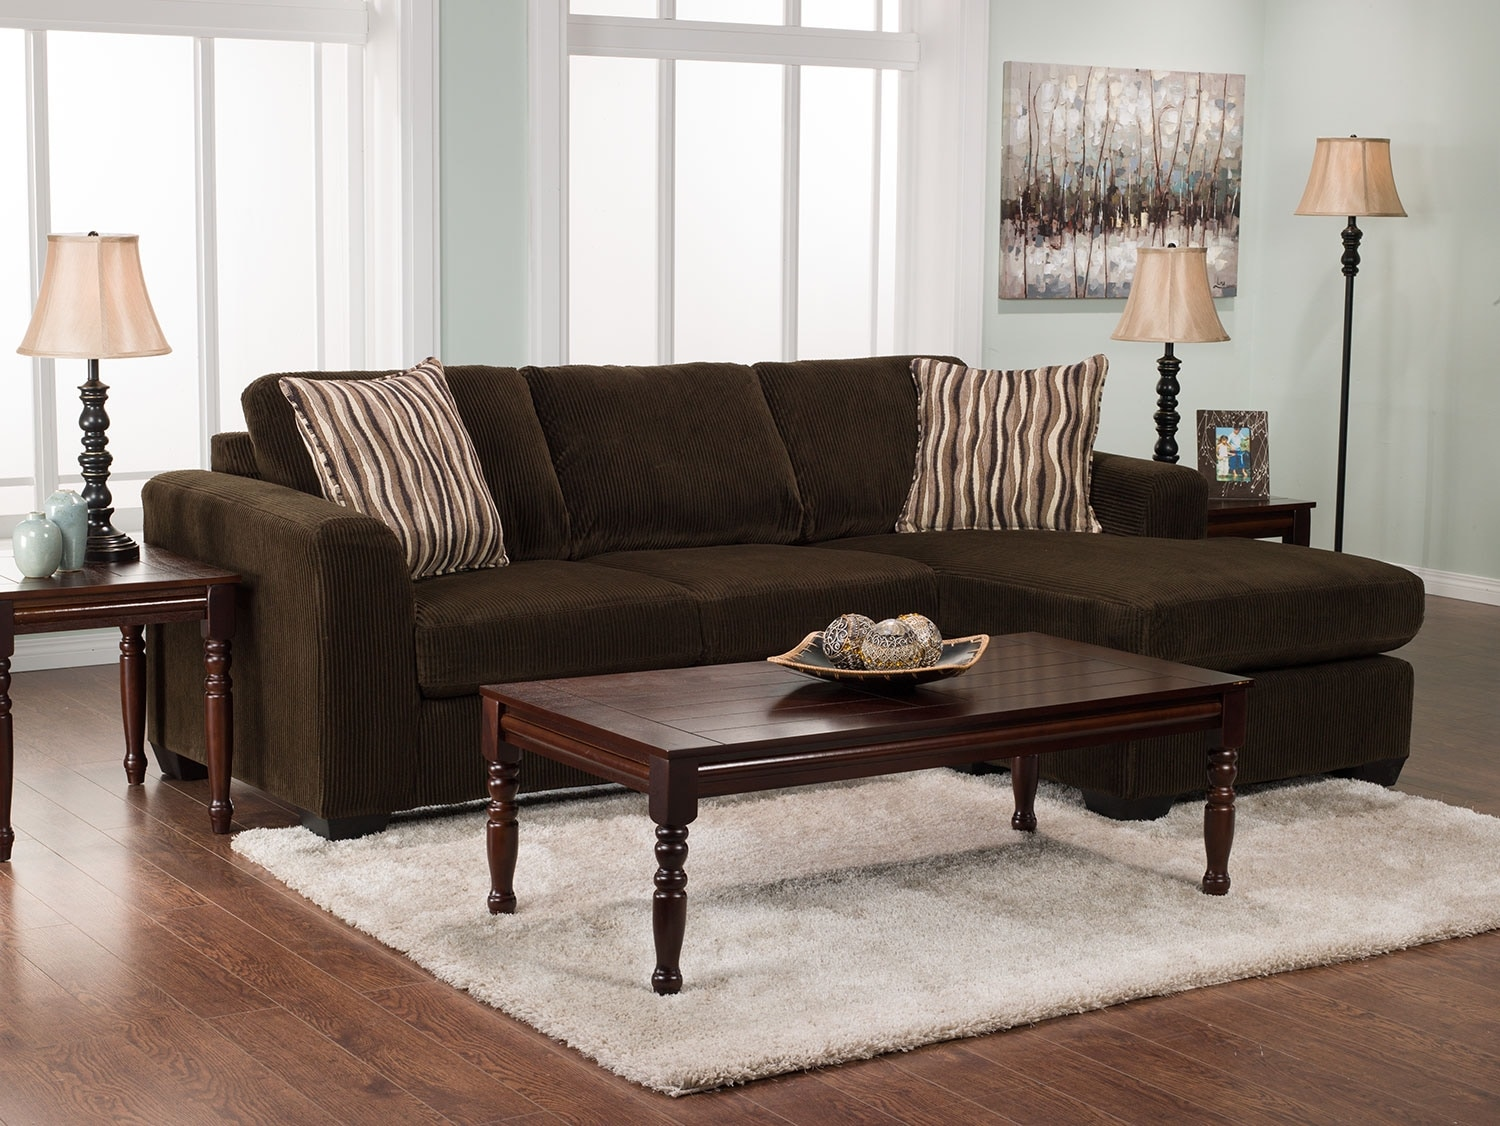 Nina 2piece Corded Microsuede Sectional With Chaise – Chocolate  The Brick